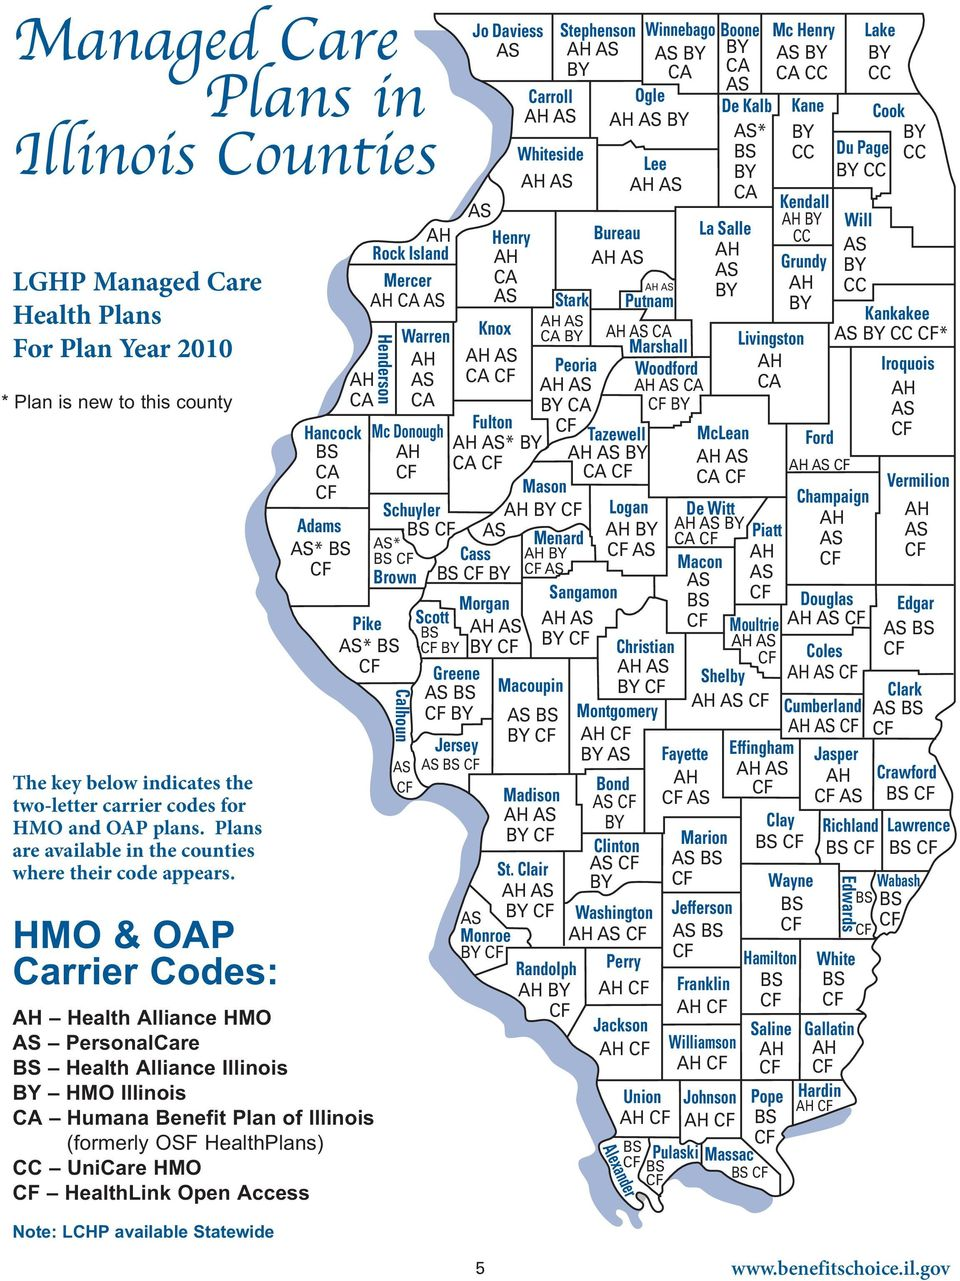 HMO & OAP Carrier Codes: AH Health Alliance HMO PersonalCare BS Health Alliance Illinois BY HMO Illinois CA Humana Benefit Plan of Illinois (formerly OSF HealthPlans) CC UniCare HMO HealthLink Open